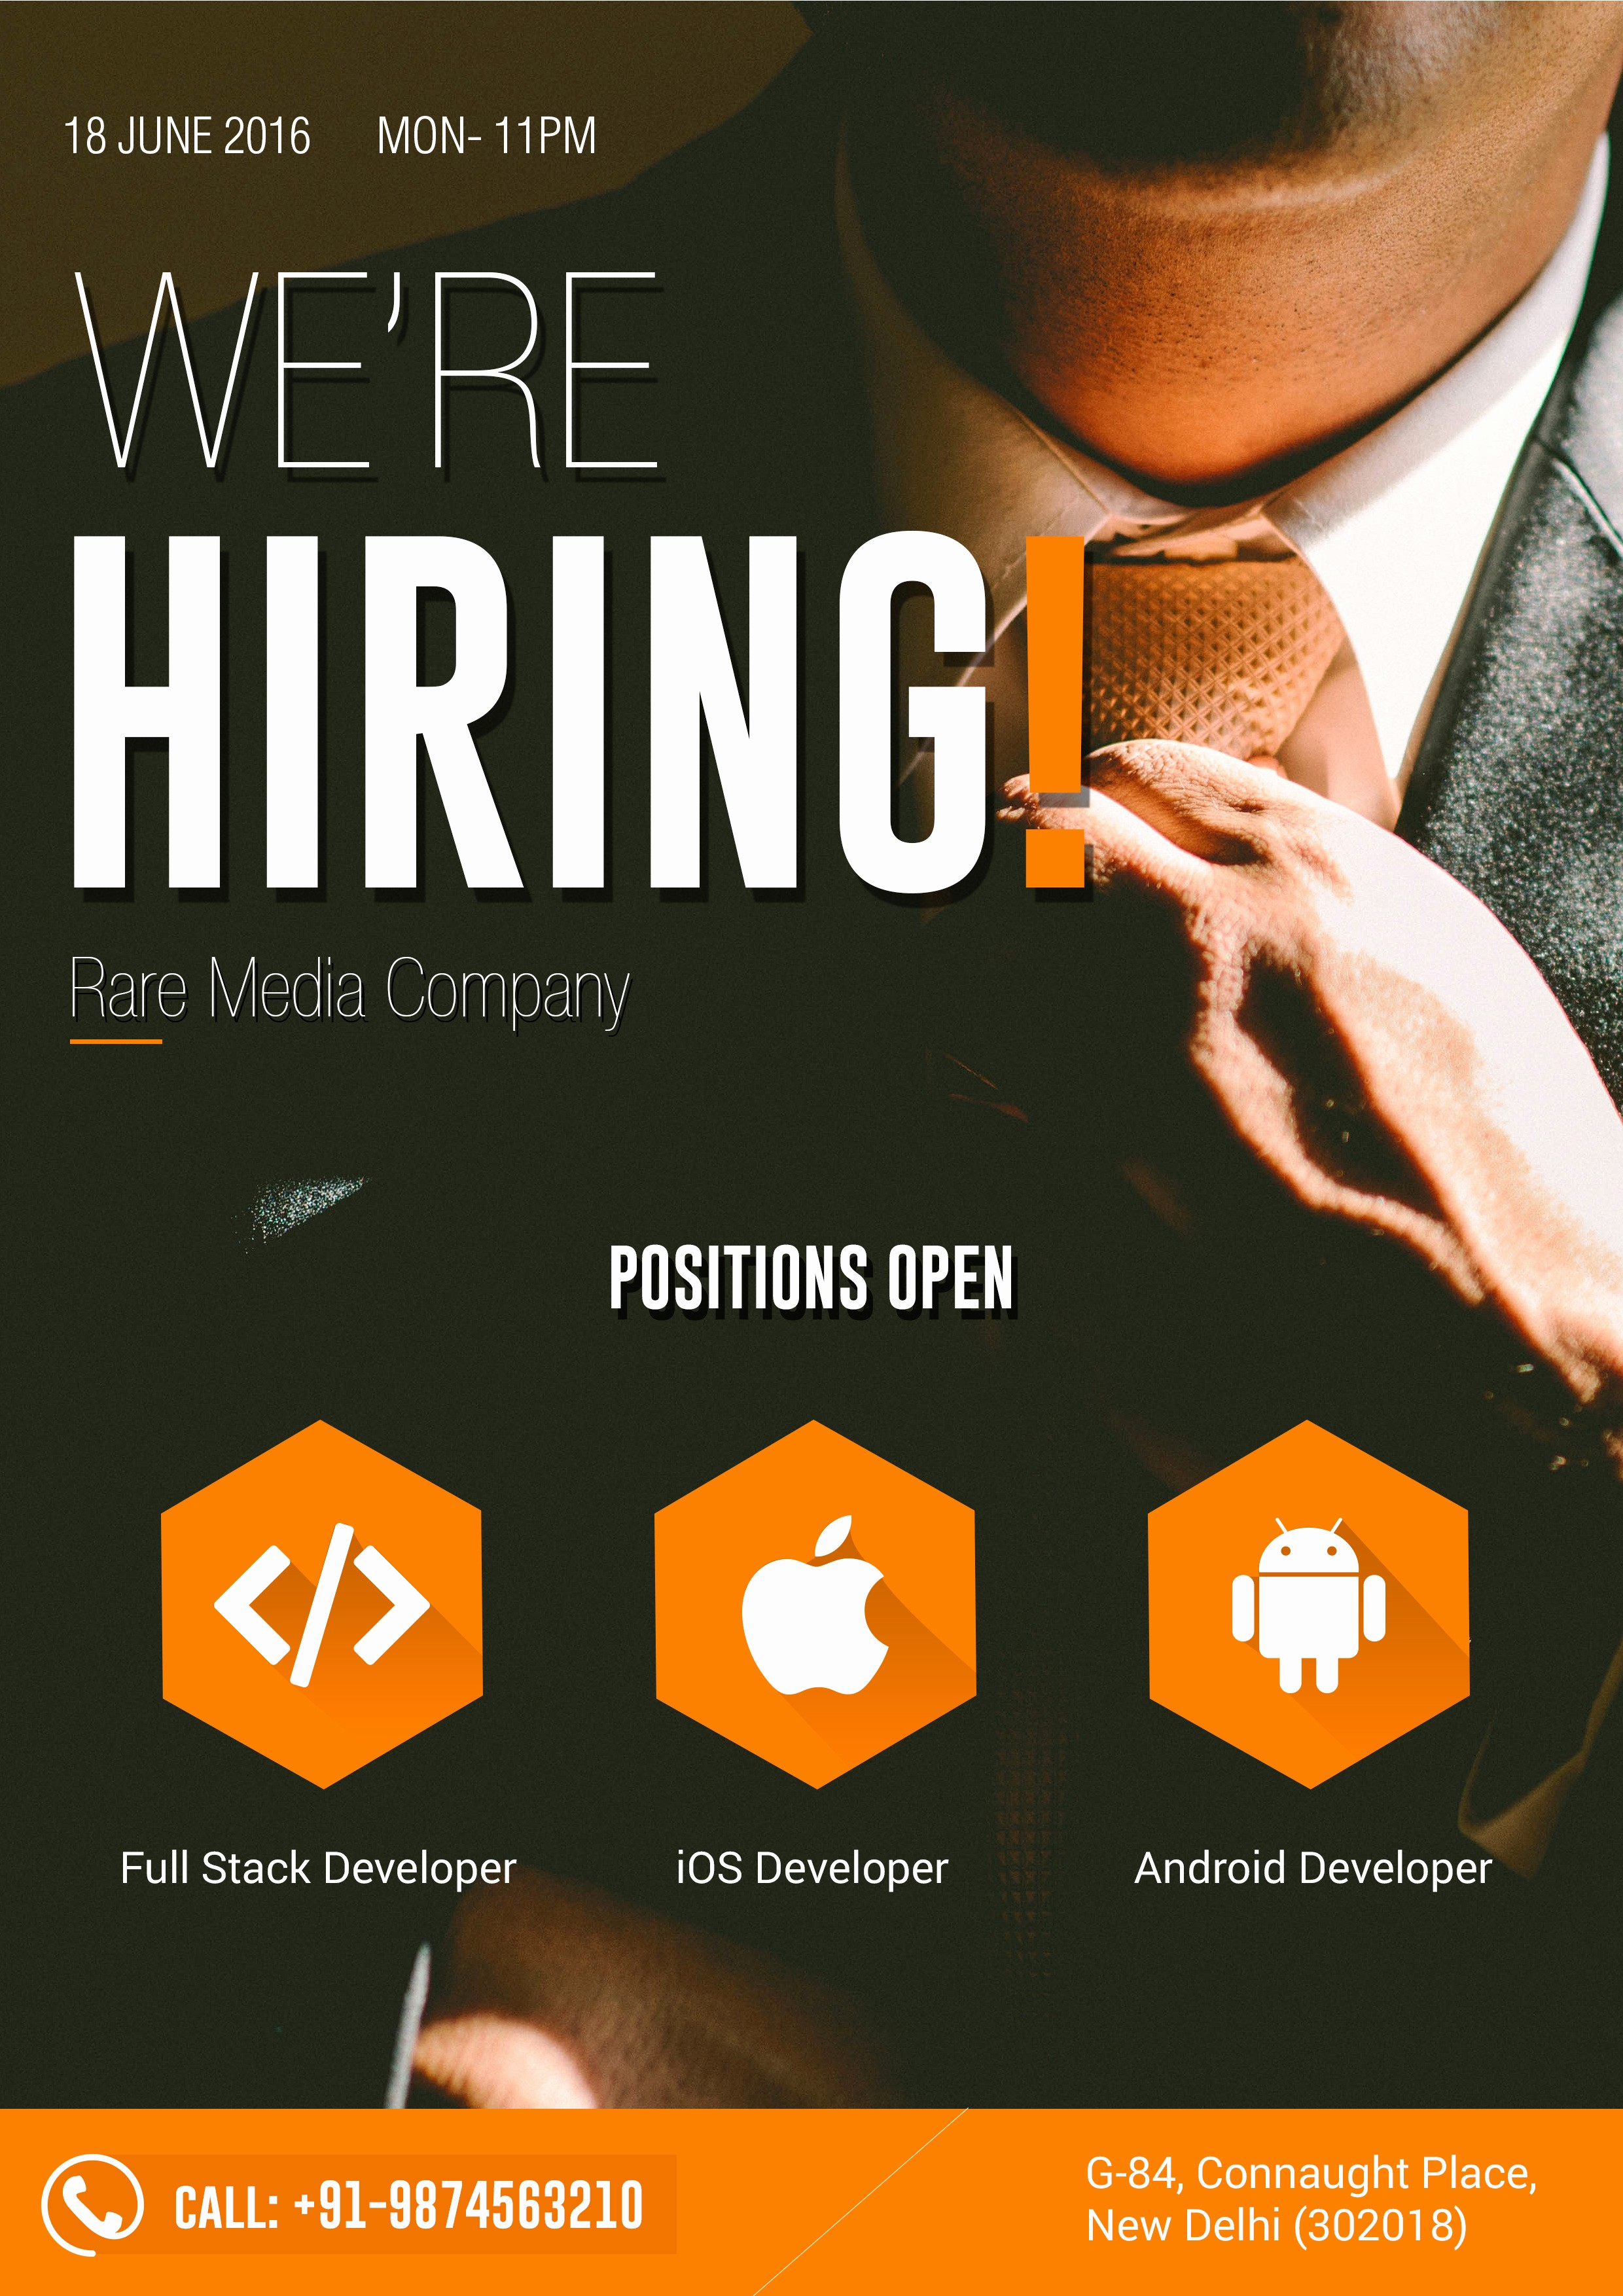 Now Hiring Flyer Template Free Fresh now Hiring Flyer Template Bamboodownunder